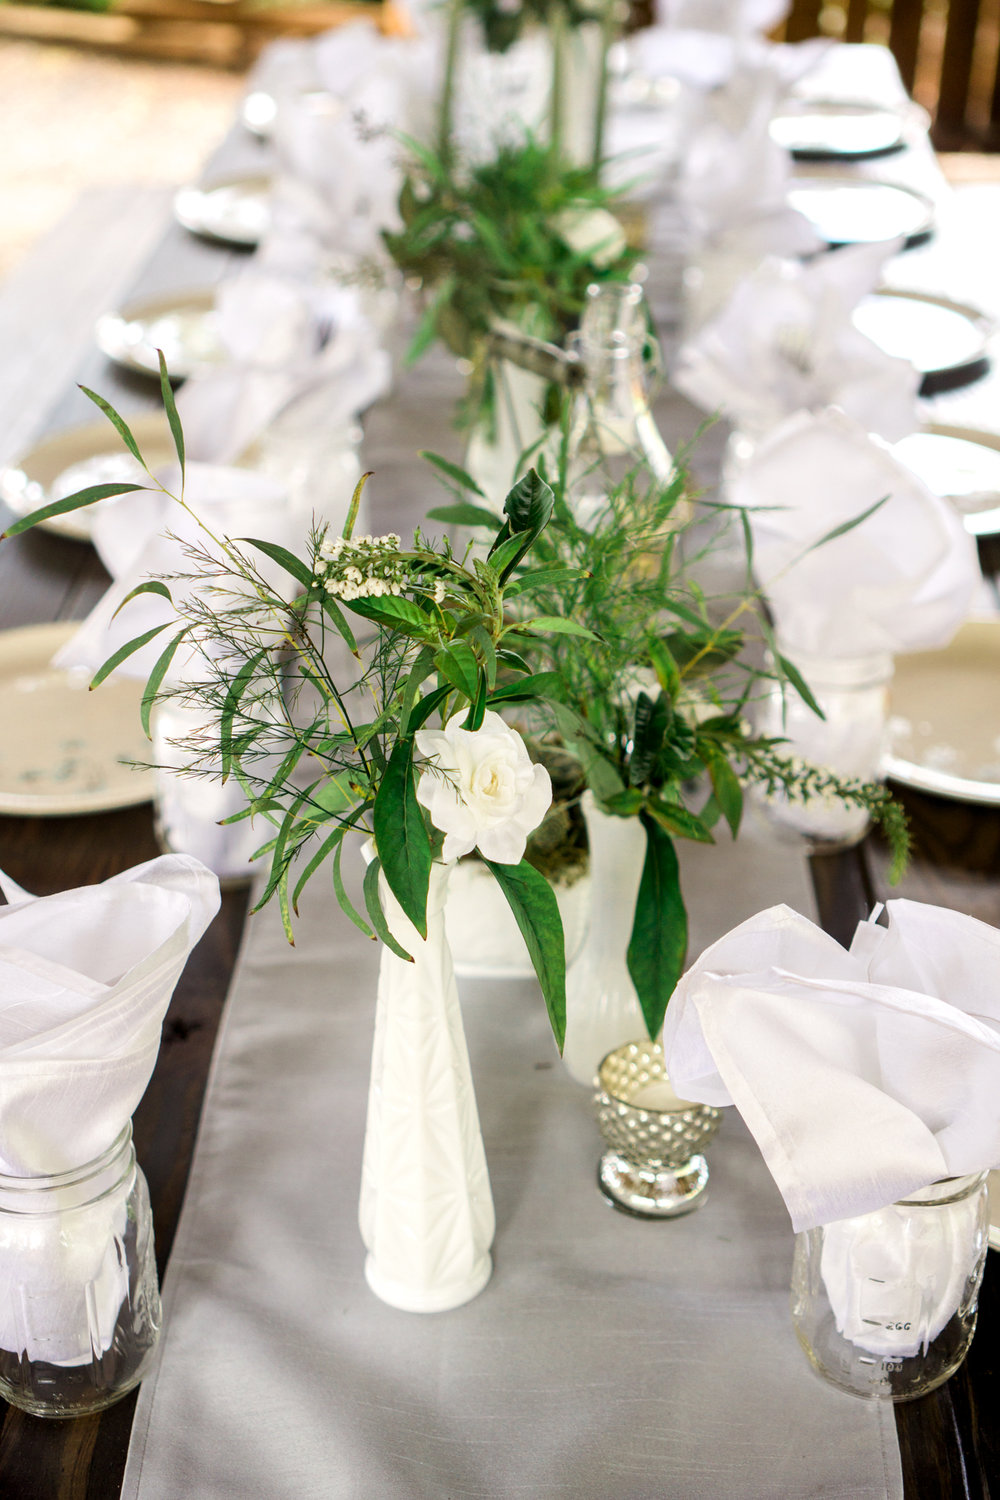 Wedding tablescape details.jpg